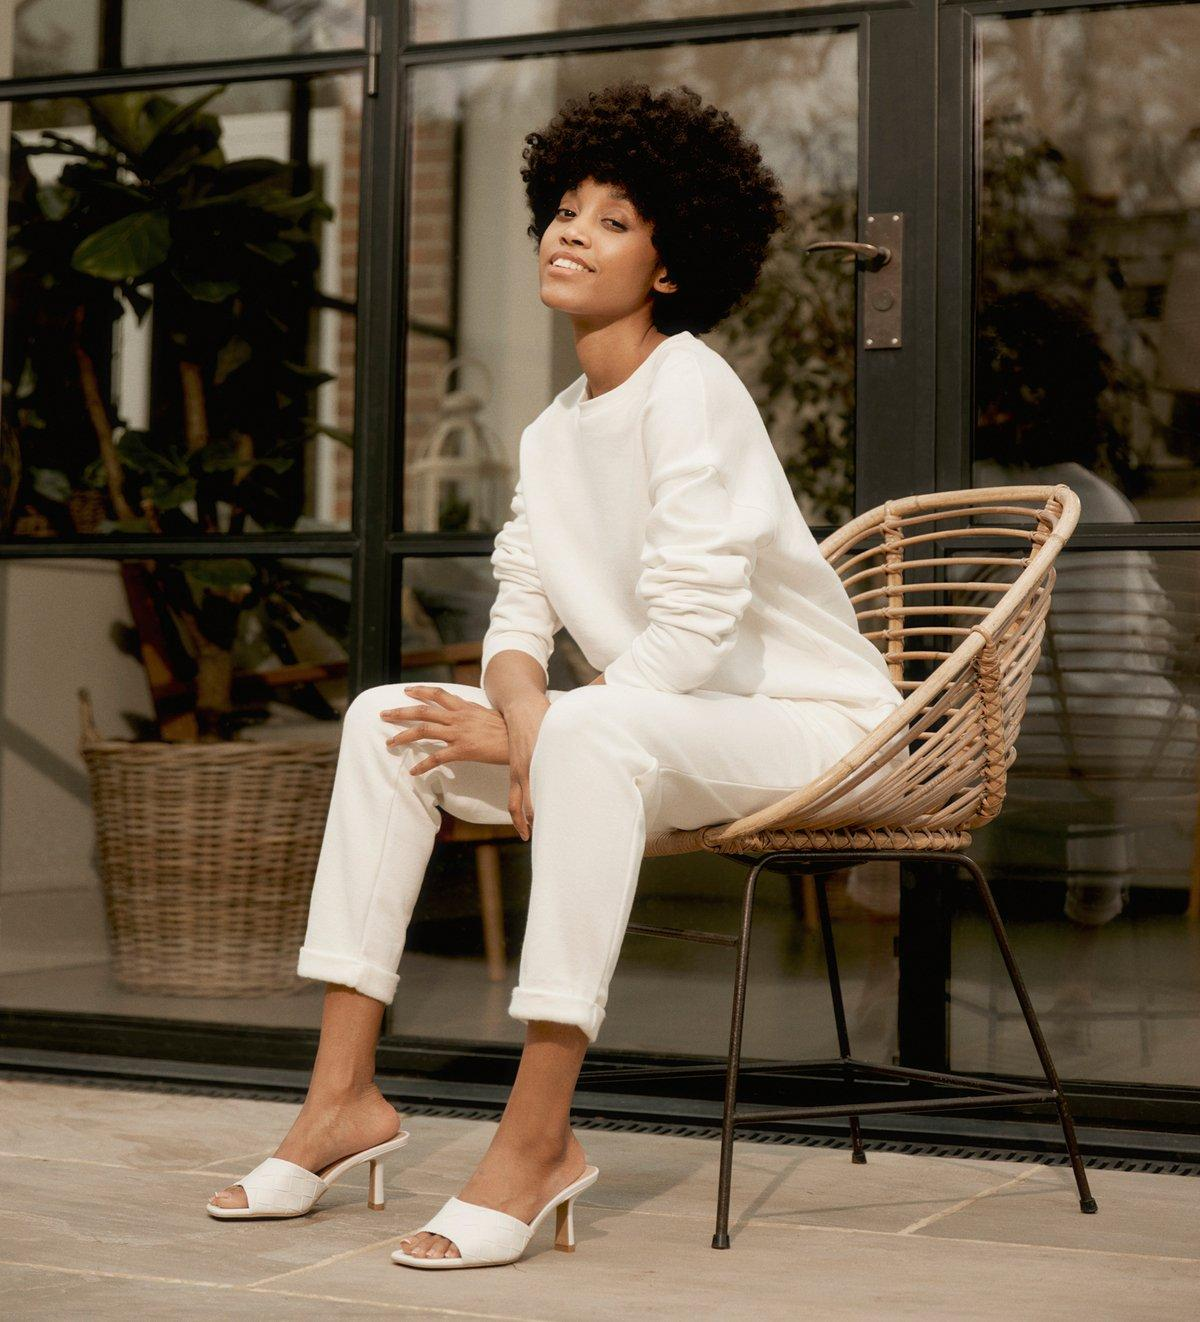 Model sits on chair wearing white top, trousers and shoes.